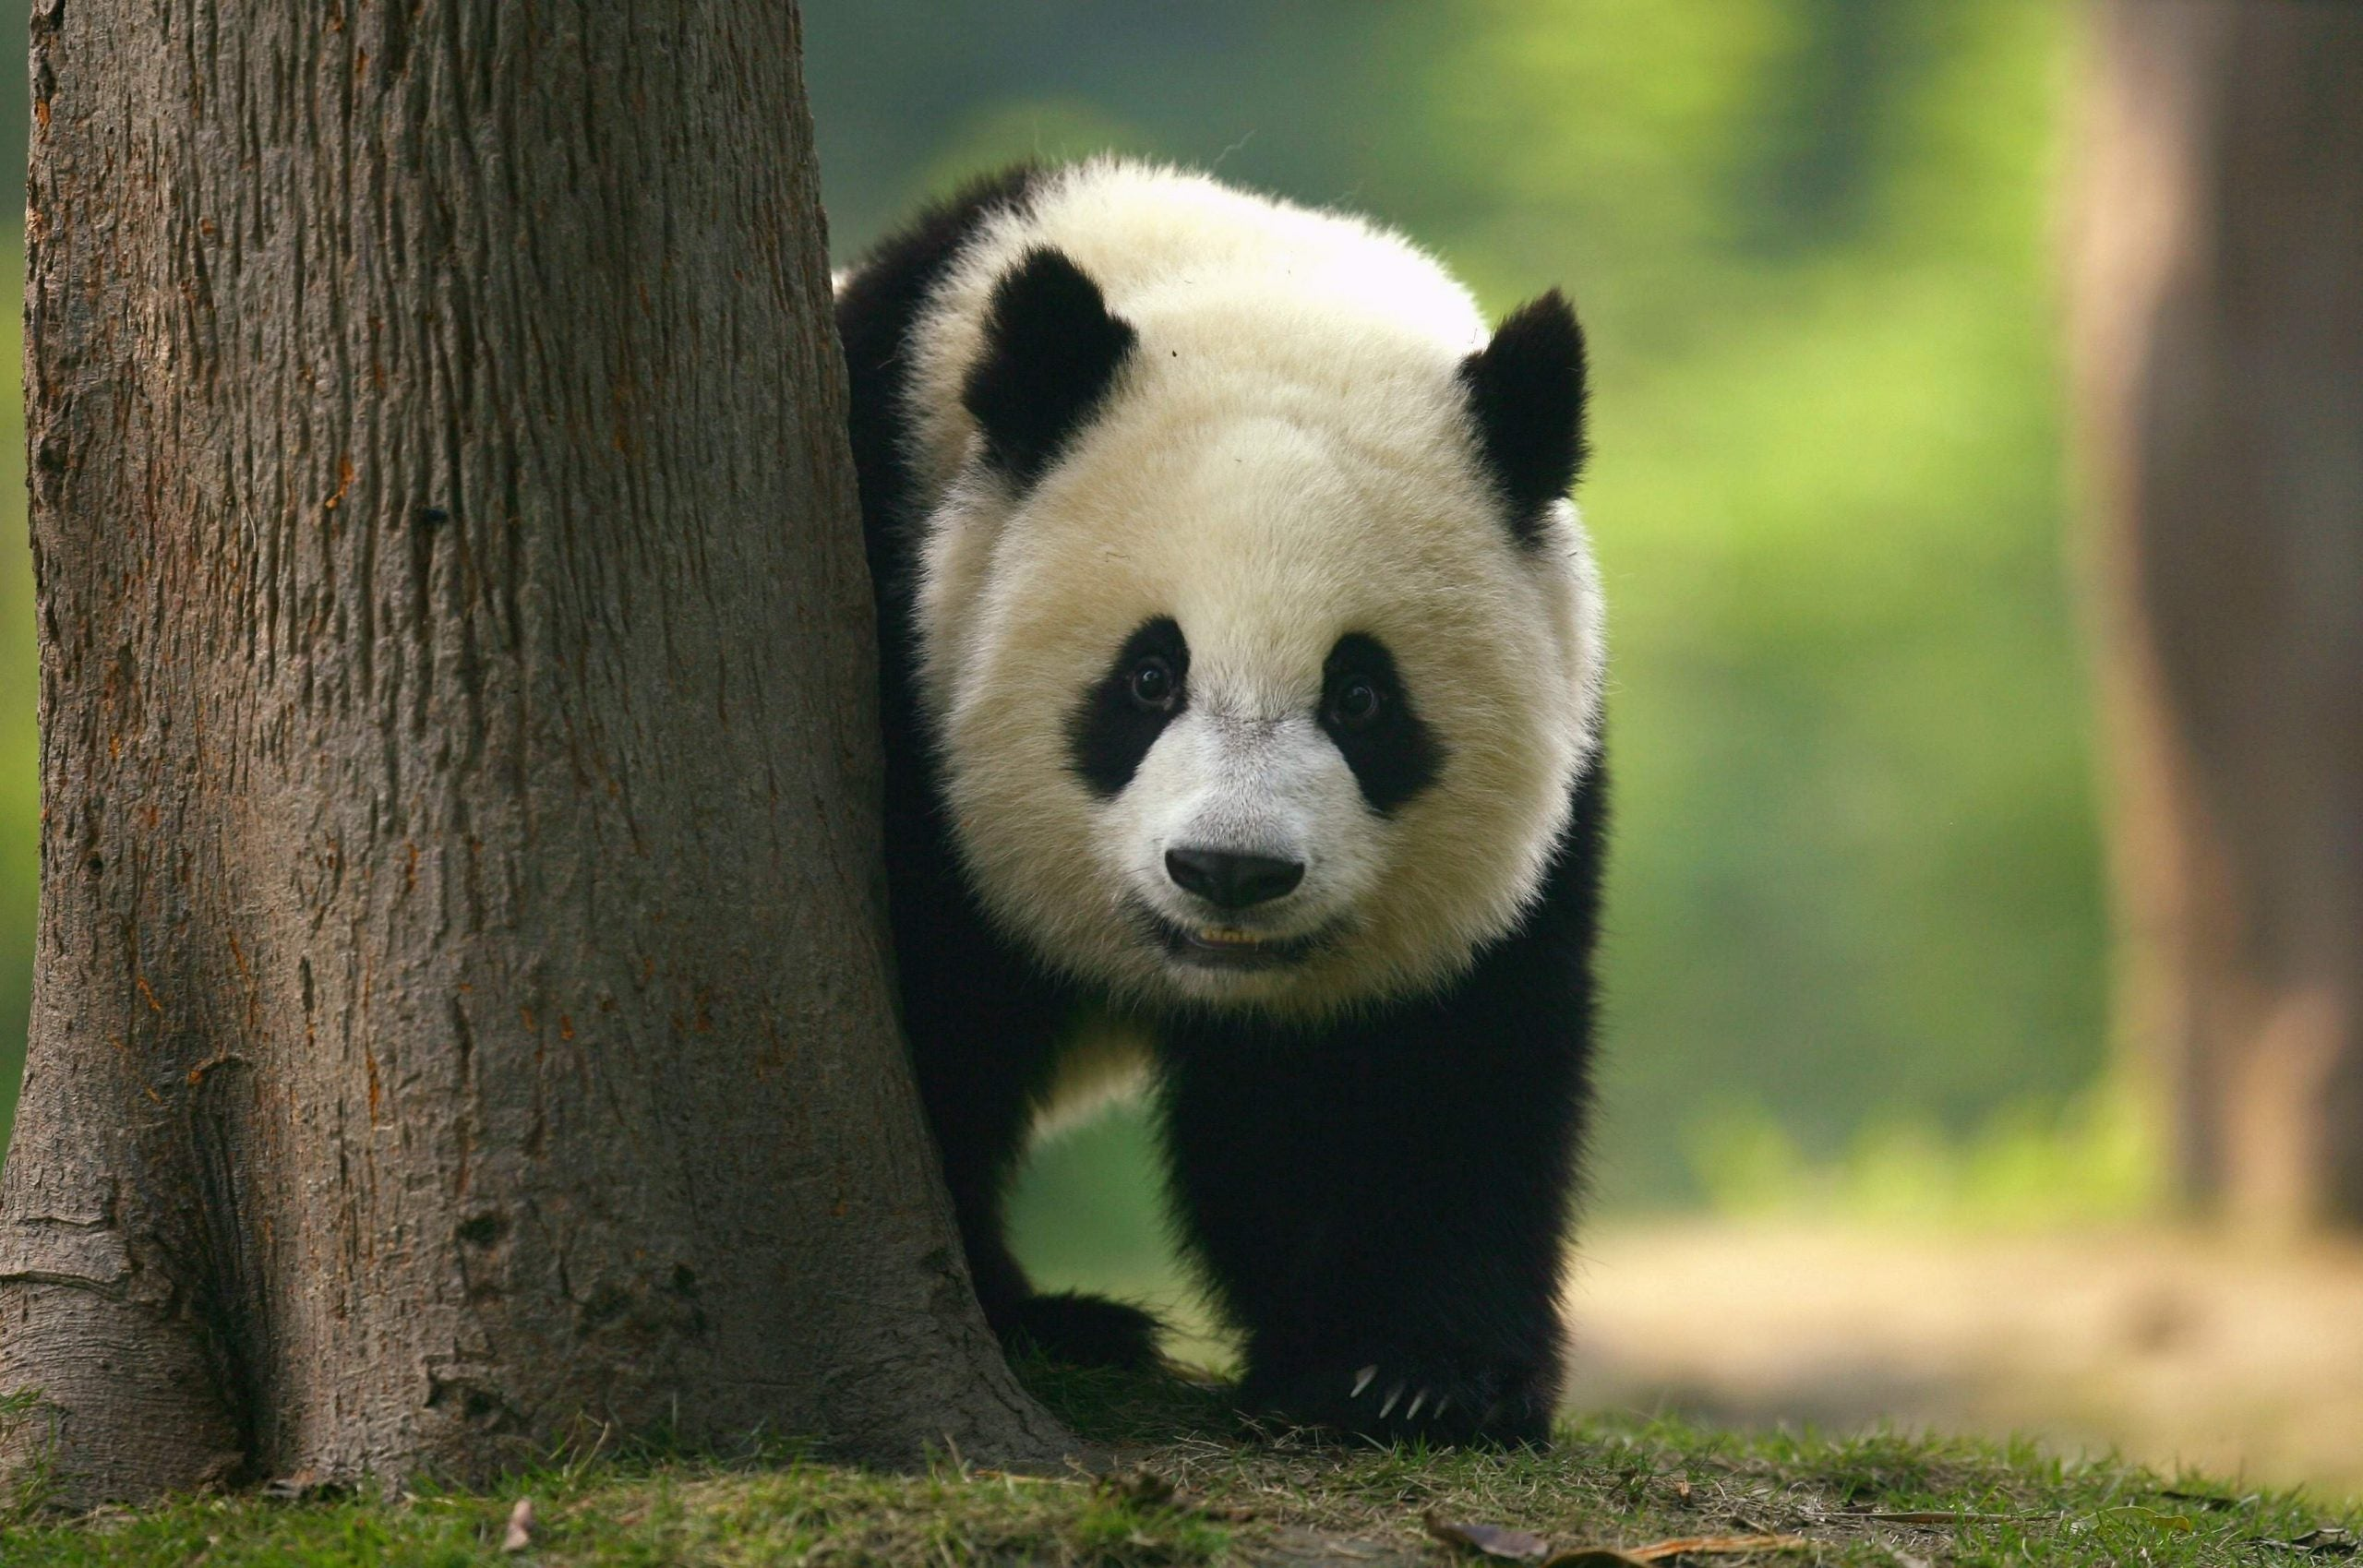 From endangered to vulnerable: have we really saved giant pandas from extinction?